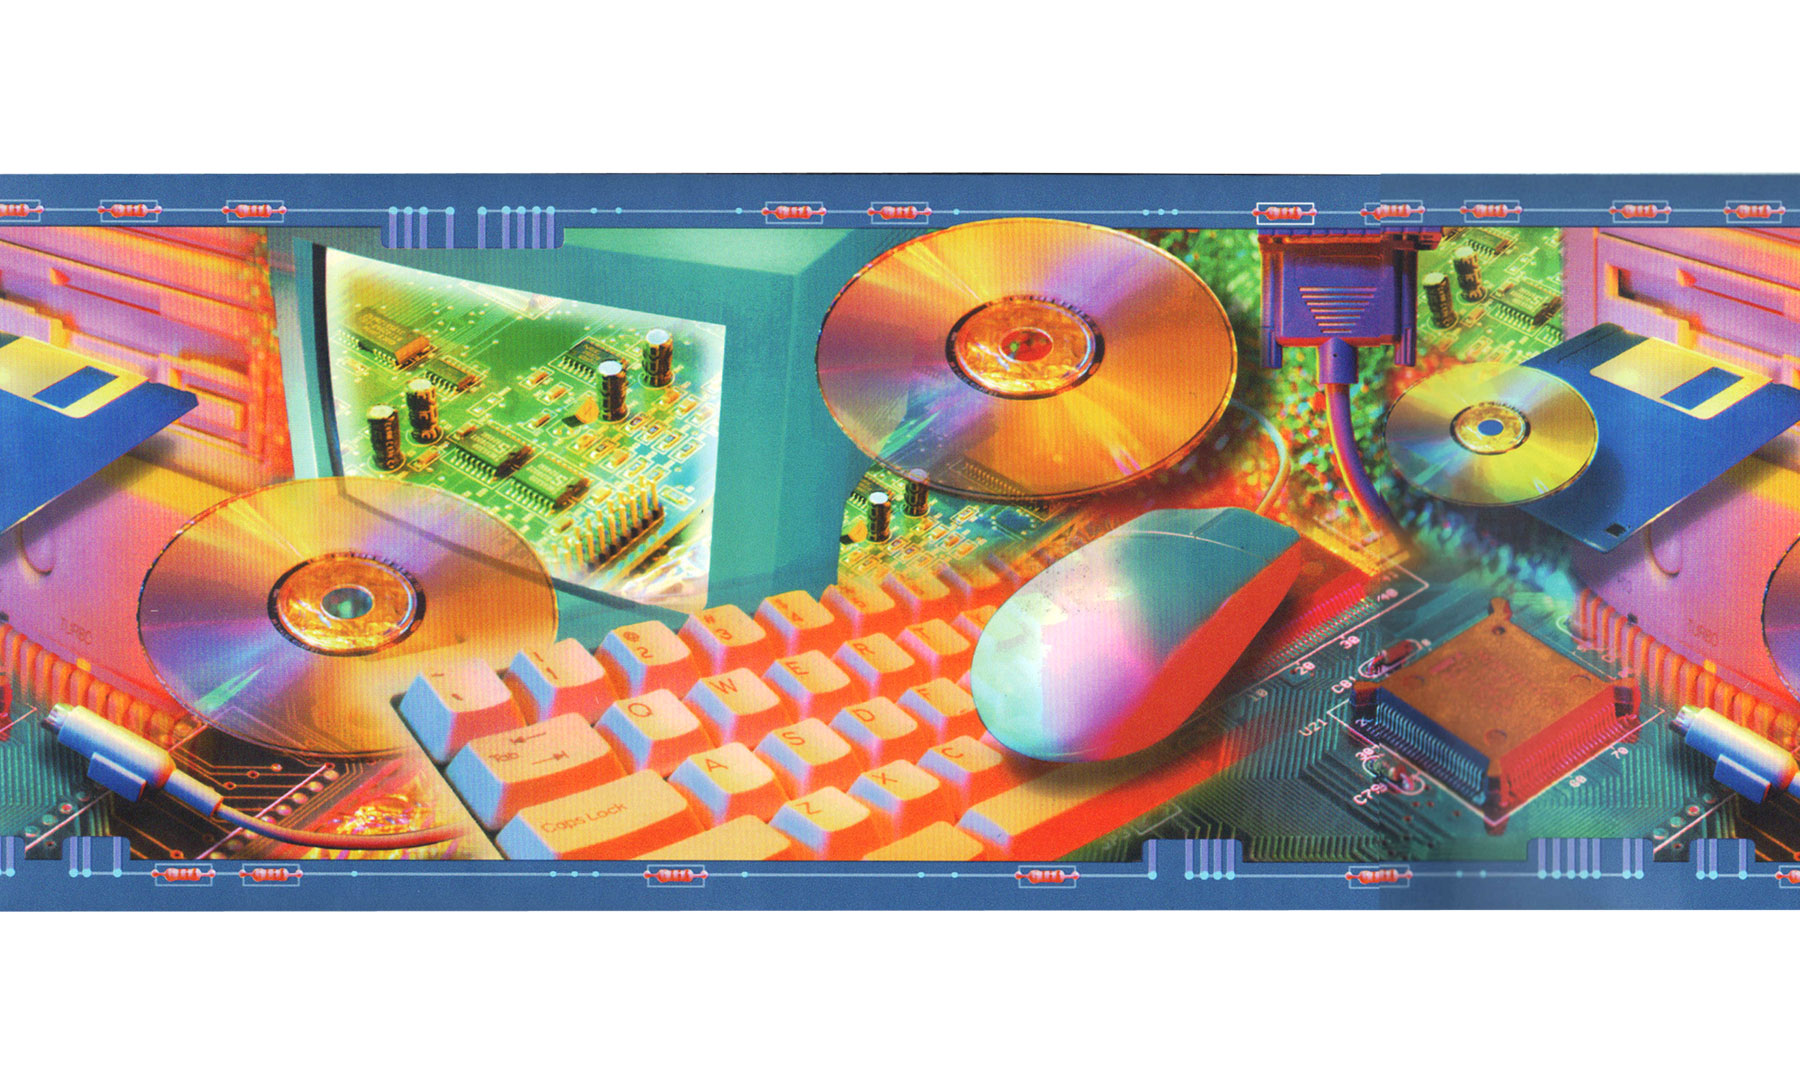 90s Computer Prepasted Wall Border - Retro Technology Wall Decoration